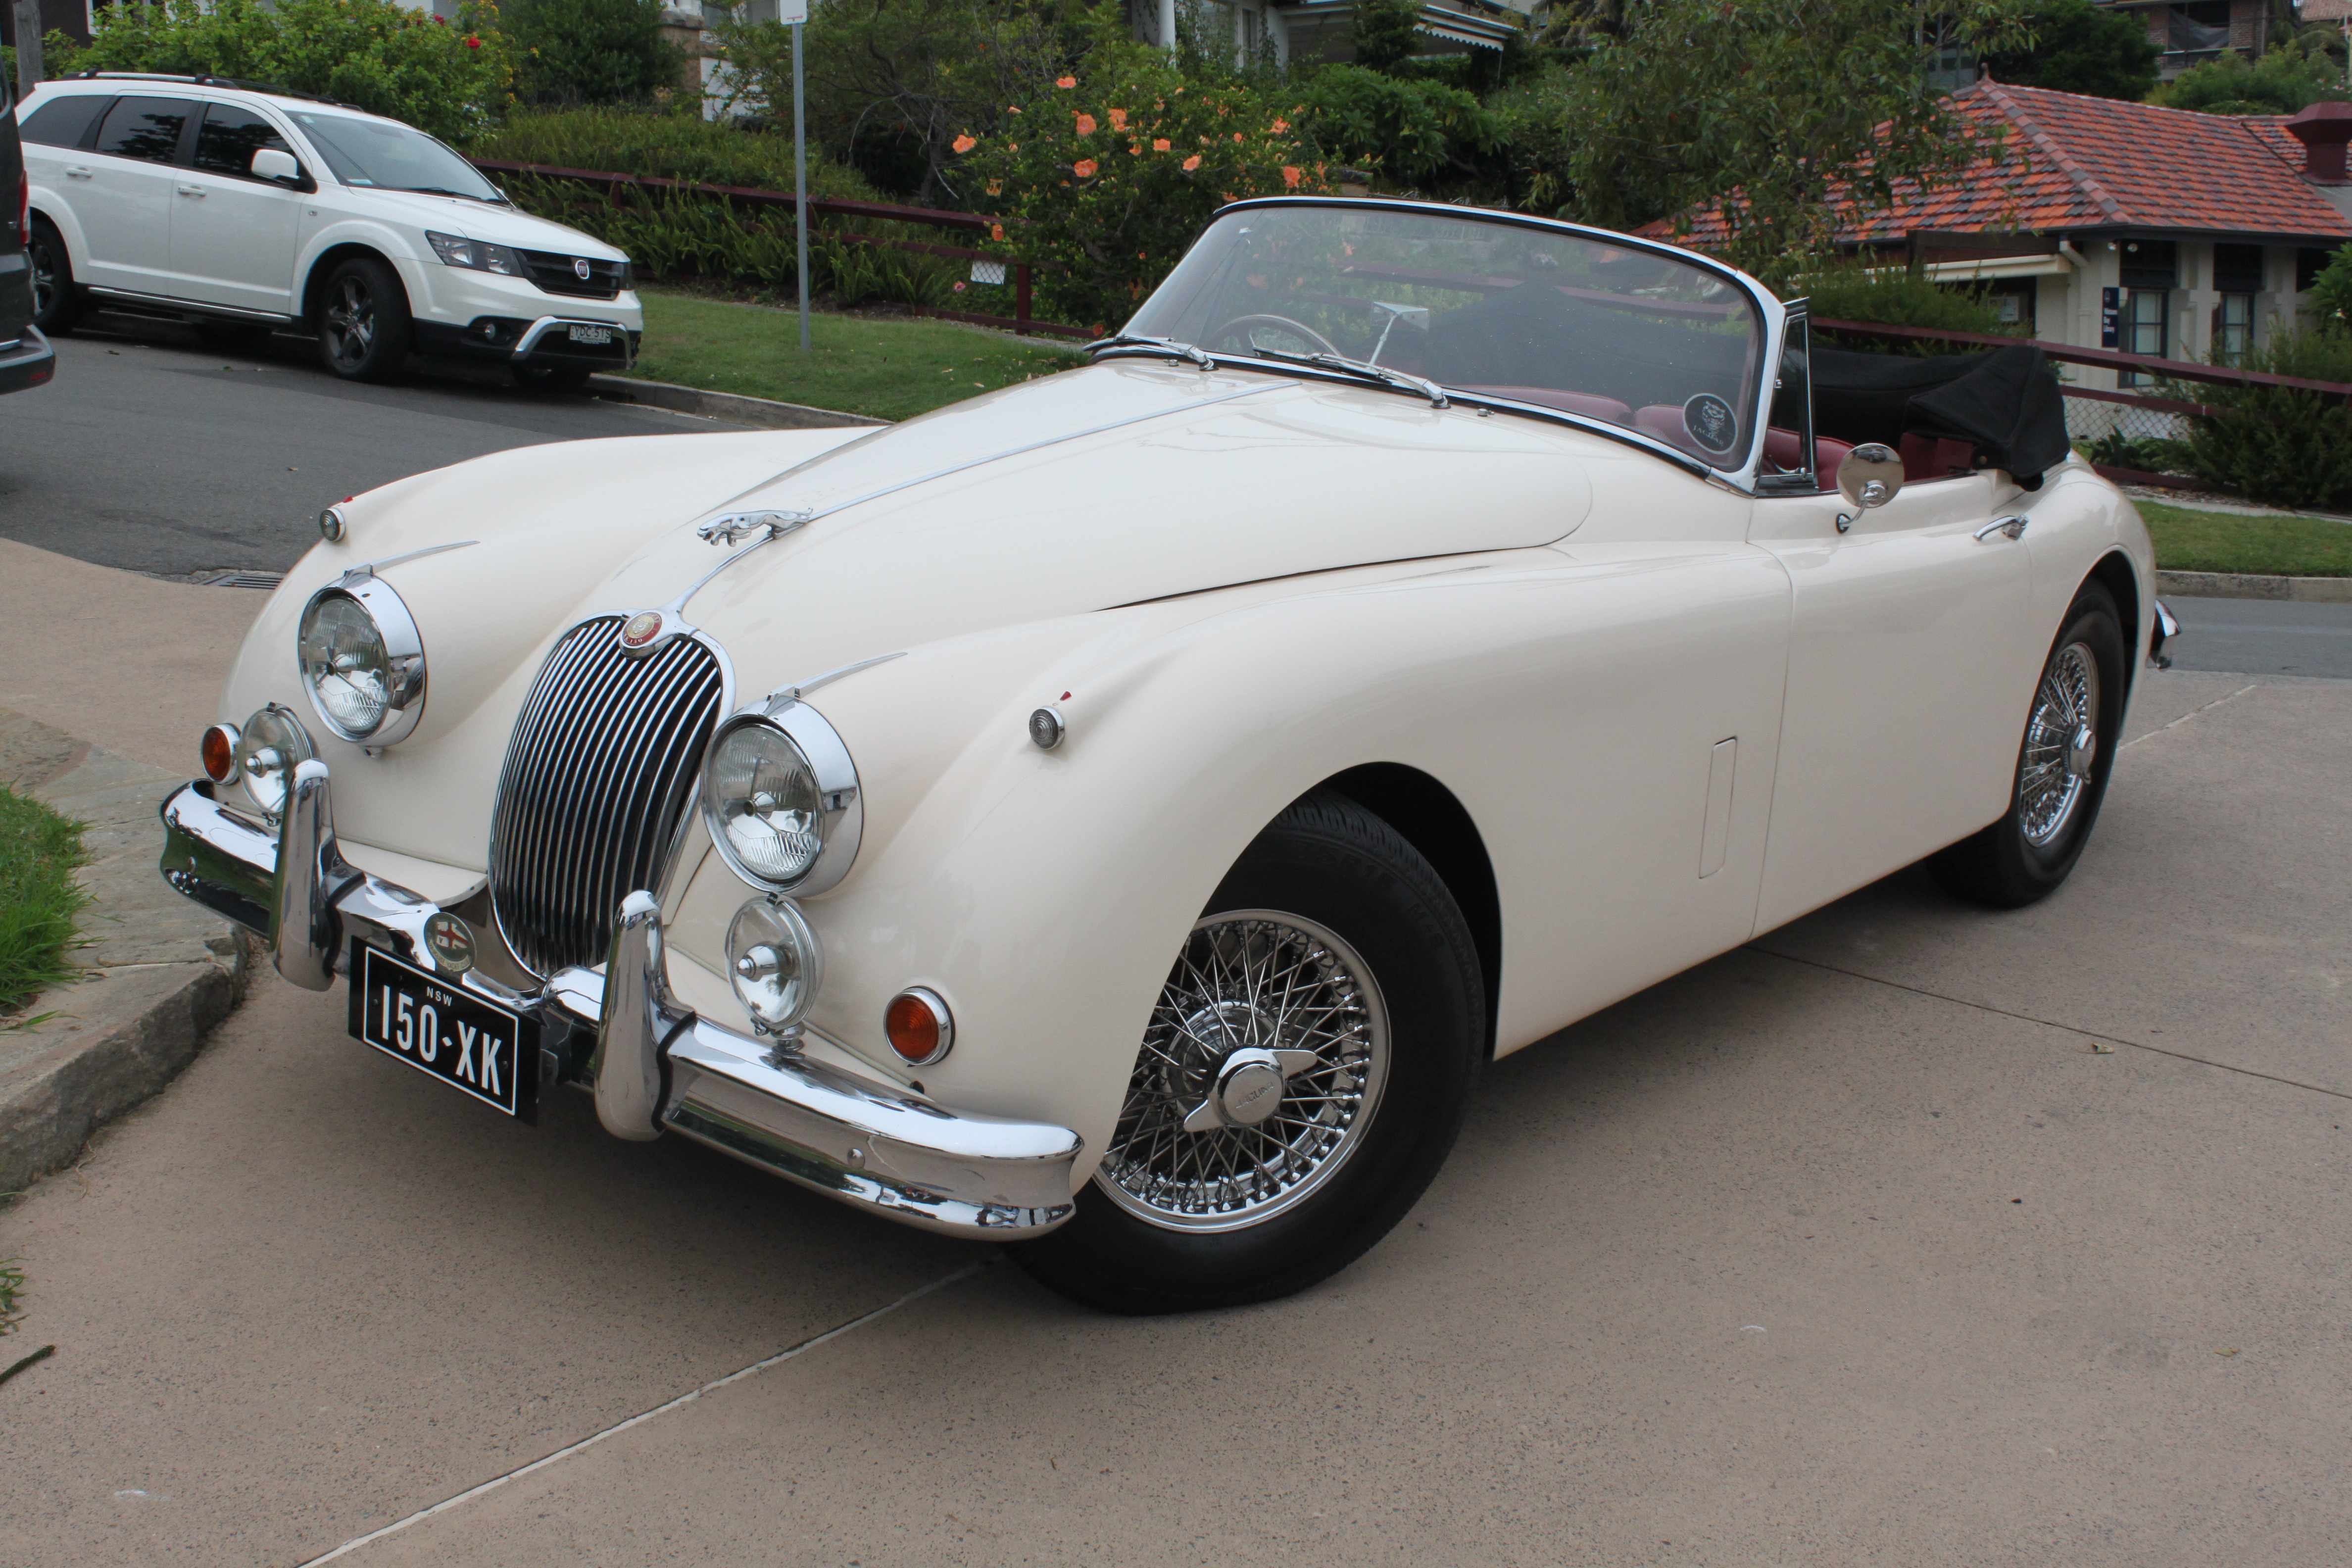 Xk120 Jaguar For Sale Australiajaguar Xk 120 Ots Alloy 1950 Fr 310 1954 Wiring Diagram File 1959 Xk150 25460836533 Wikimedia Commons